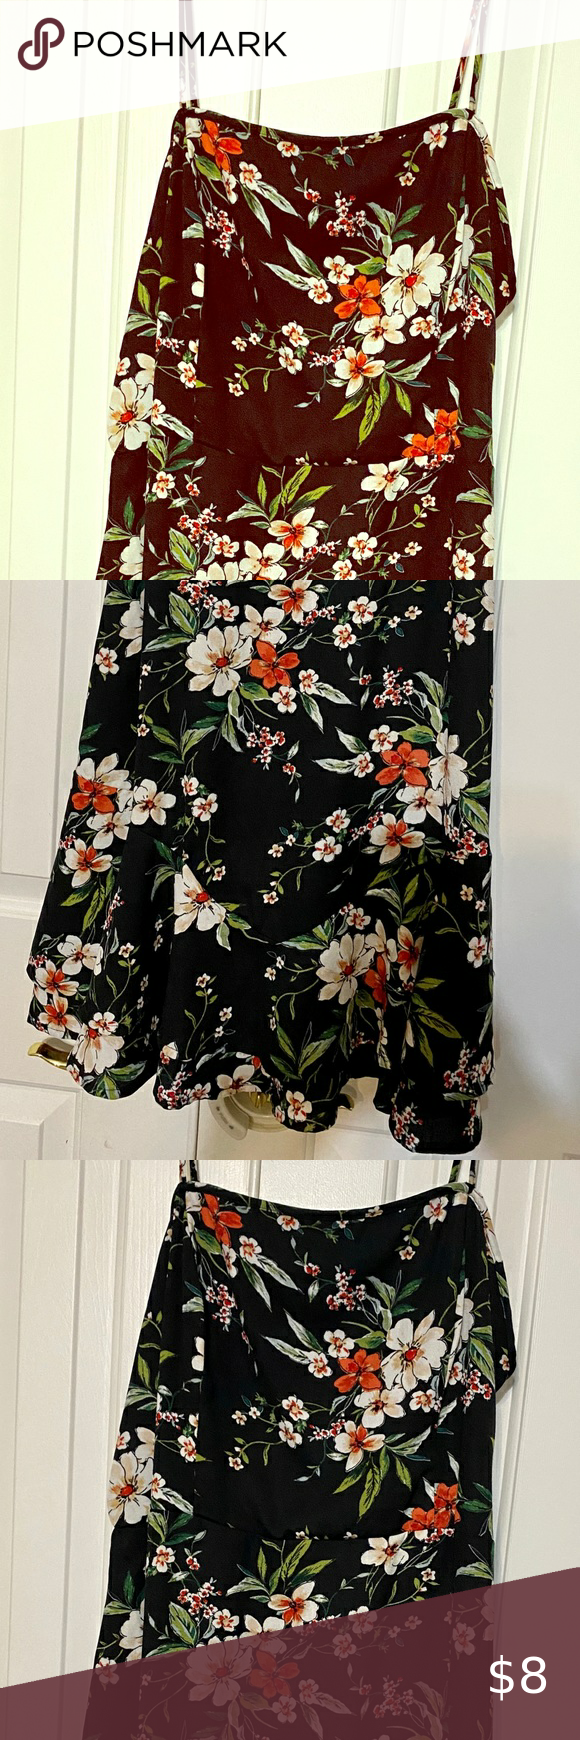 Floral Dress New With Tags From Target Black Floral Dress Brand New With Tags Xhilaration Dresses Floral Dress Black Colorful Dresses Dress Brands [ 1740 x 580 Pixel ]